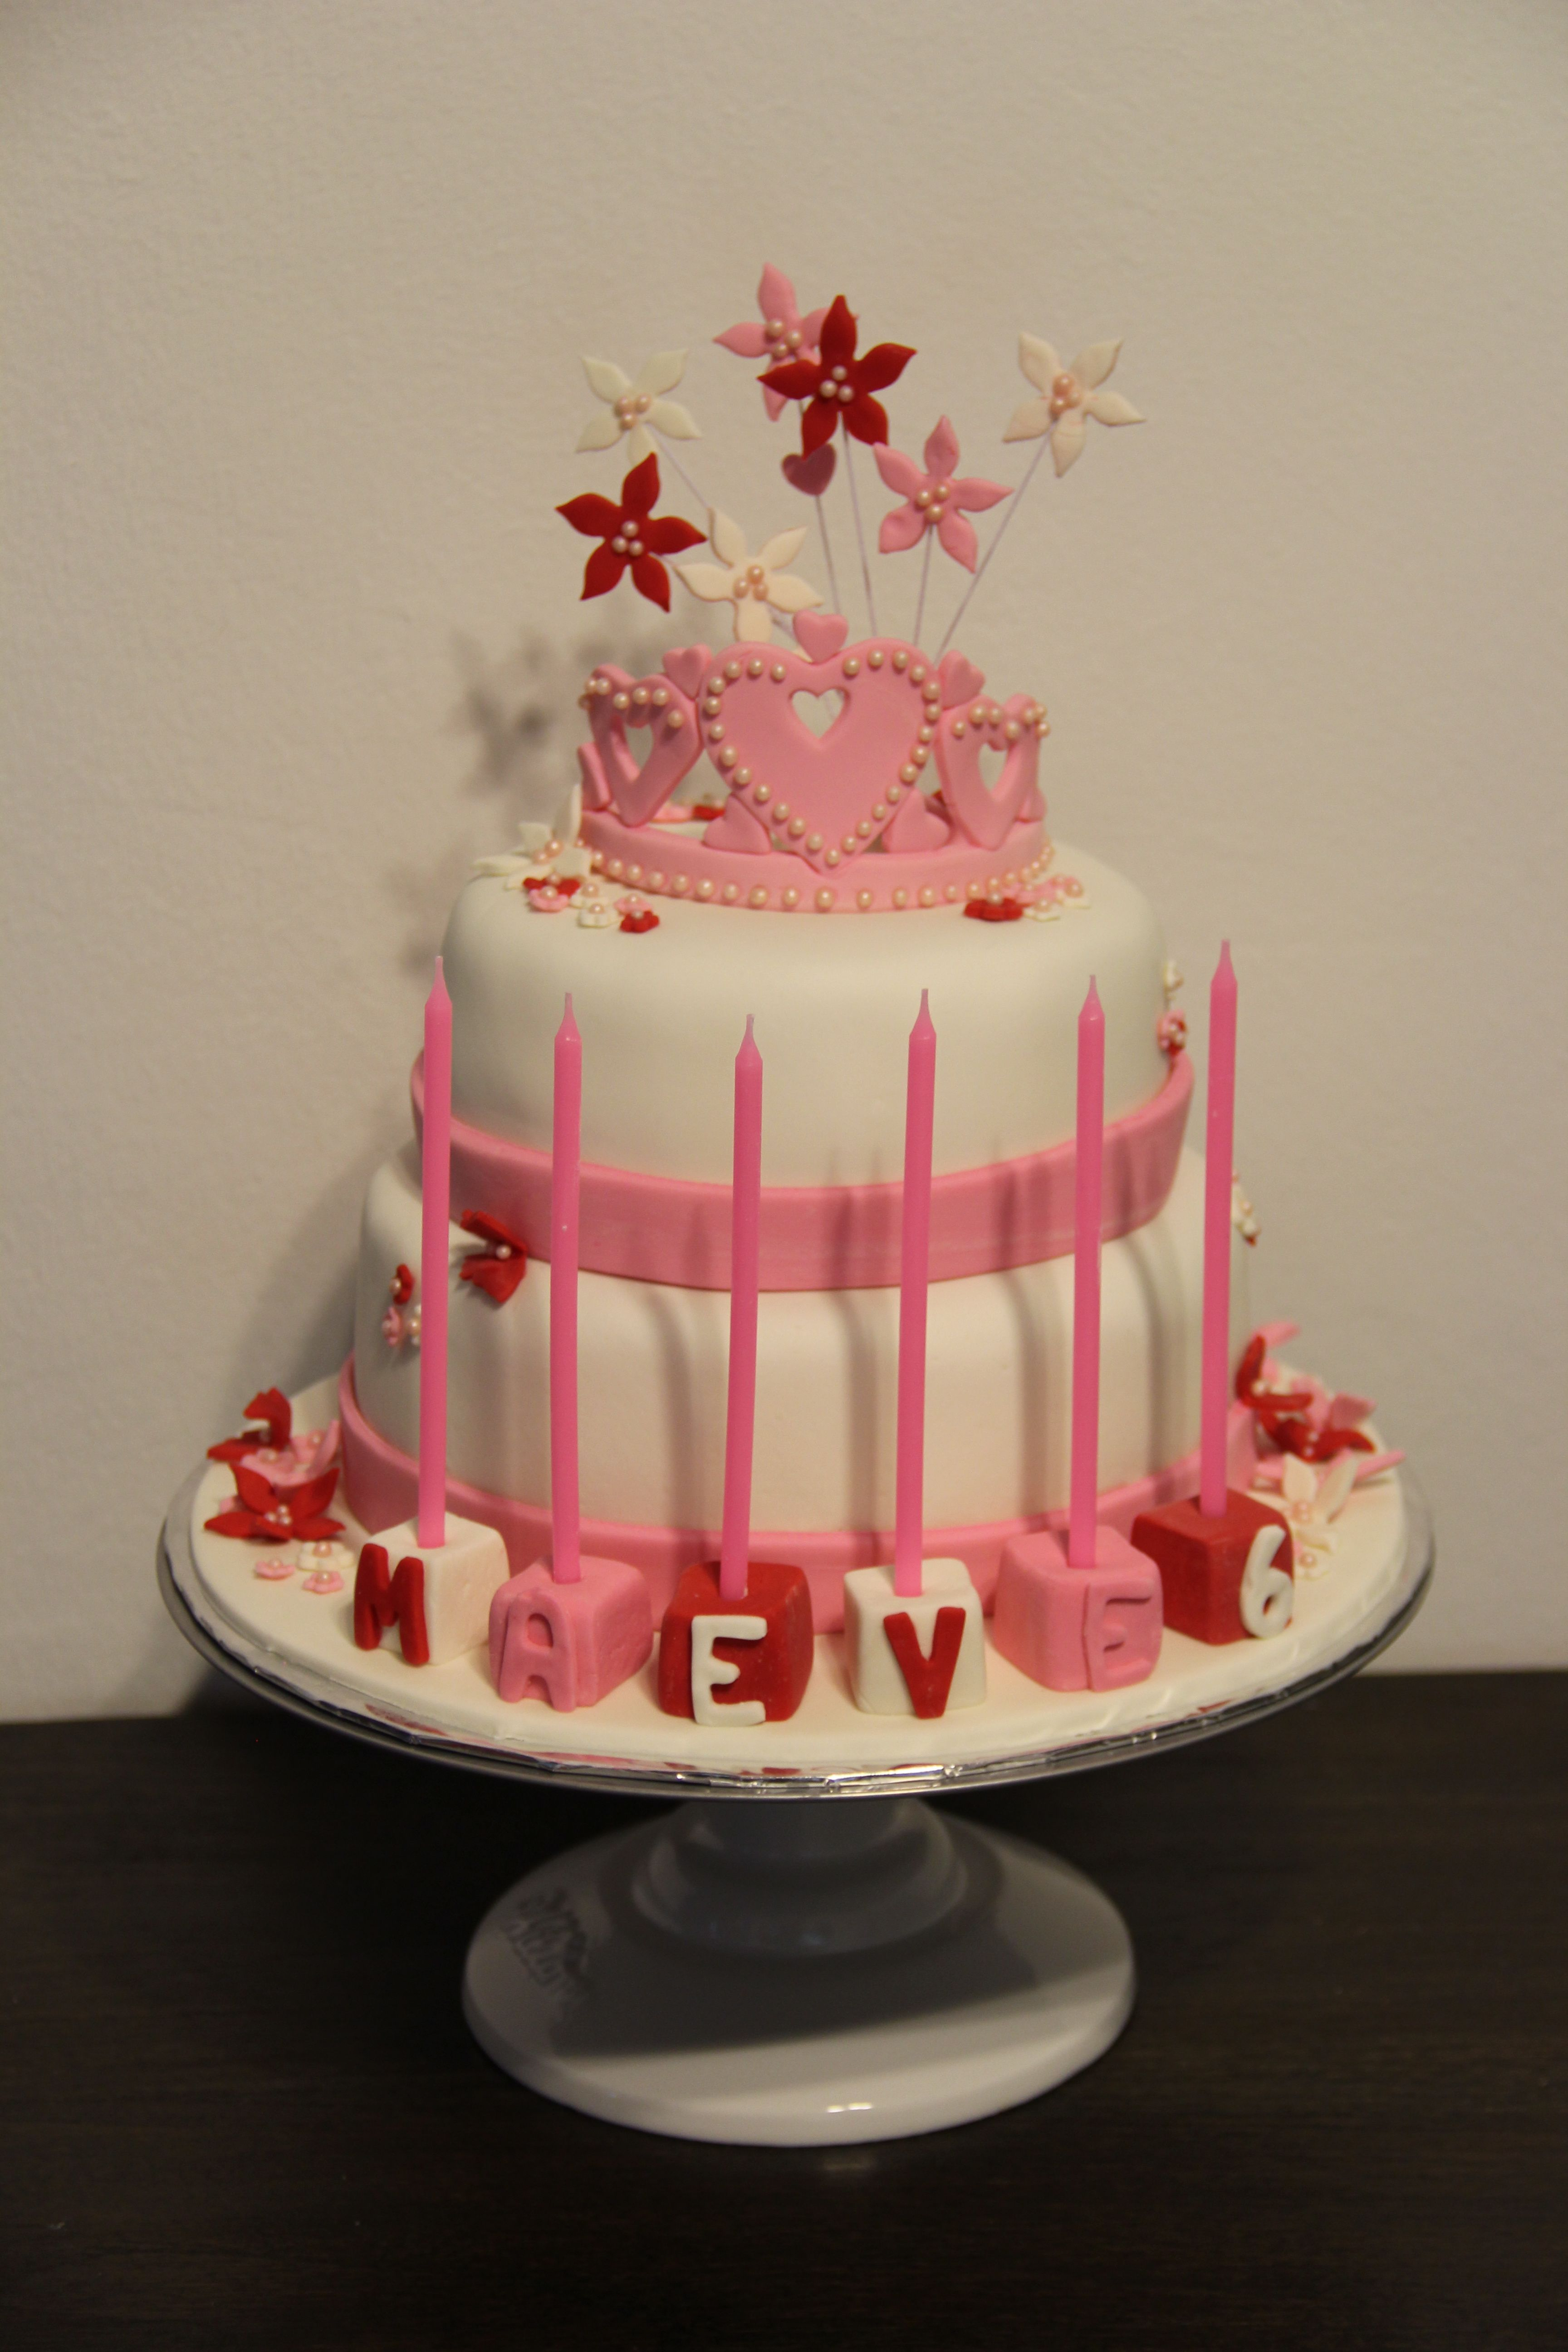 Pin by Brenda Terrell on dq cakes   Cake, Chocolate, Angel